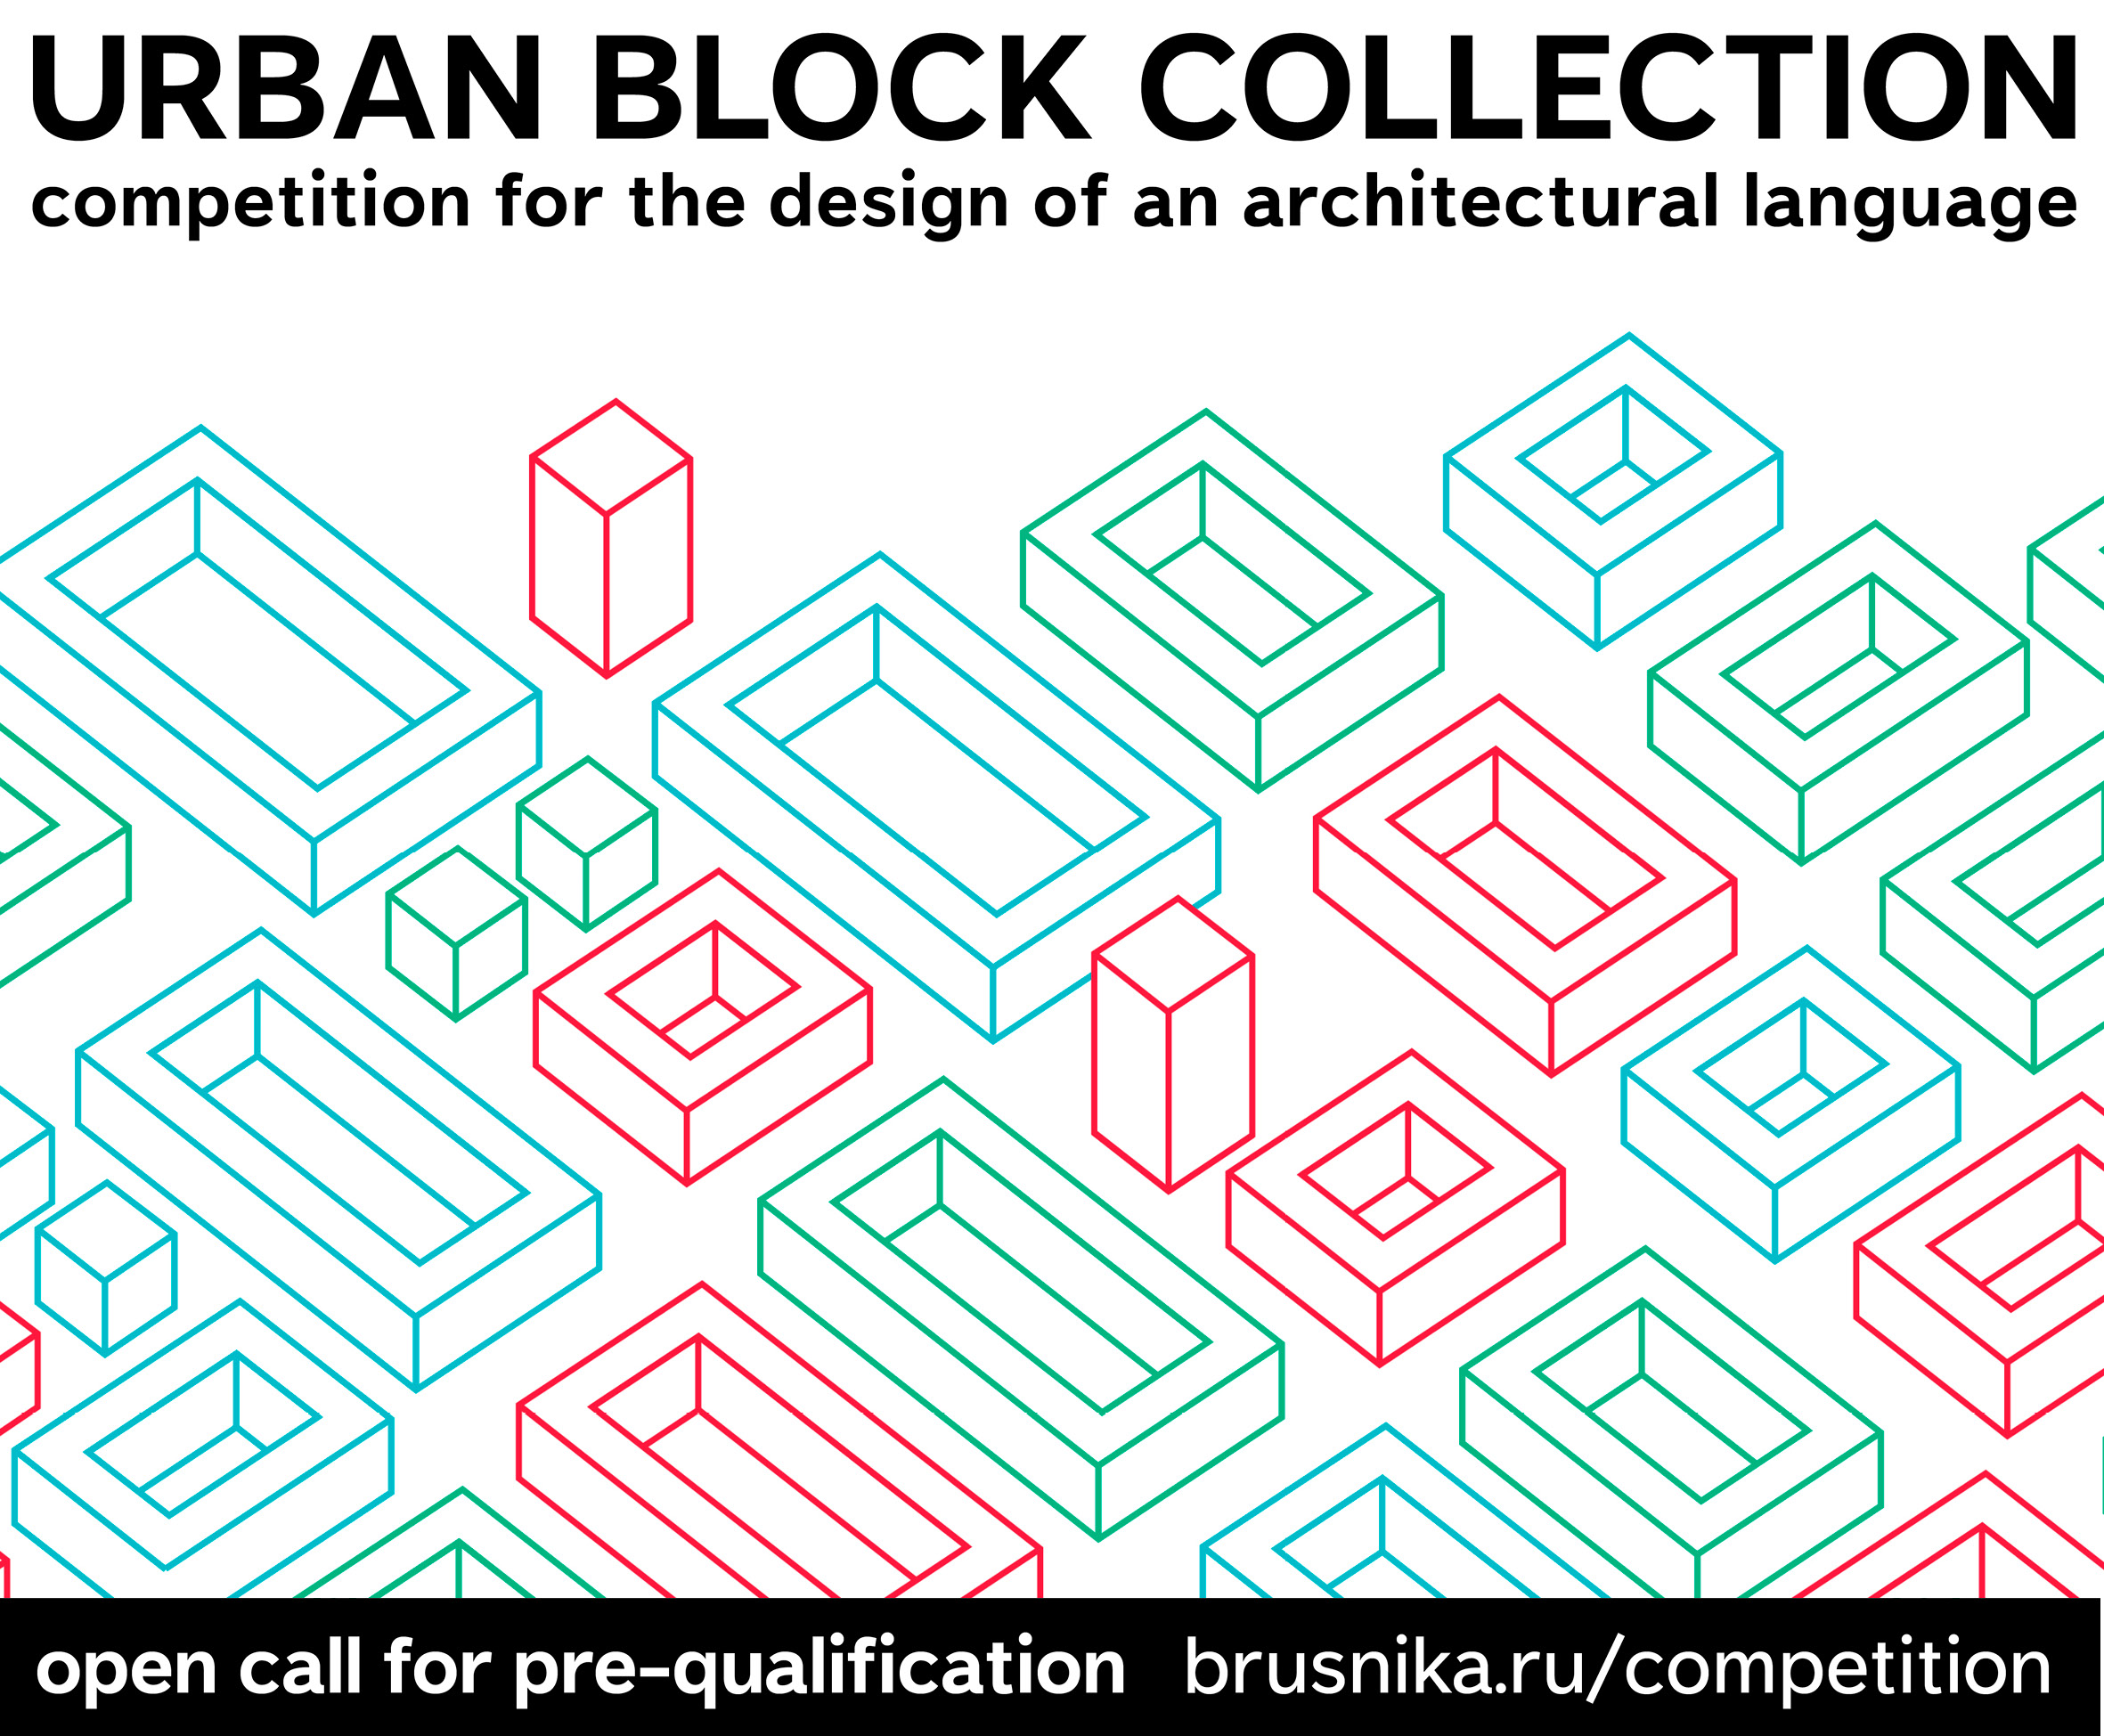 hight resolution of  urban block collection open call for pre qualification block diagram reduction matlab www brusnika ru competition